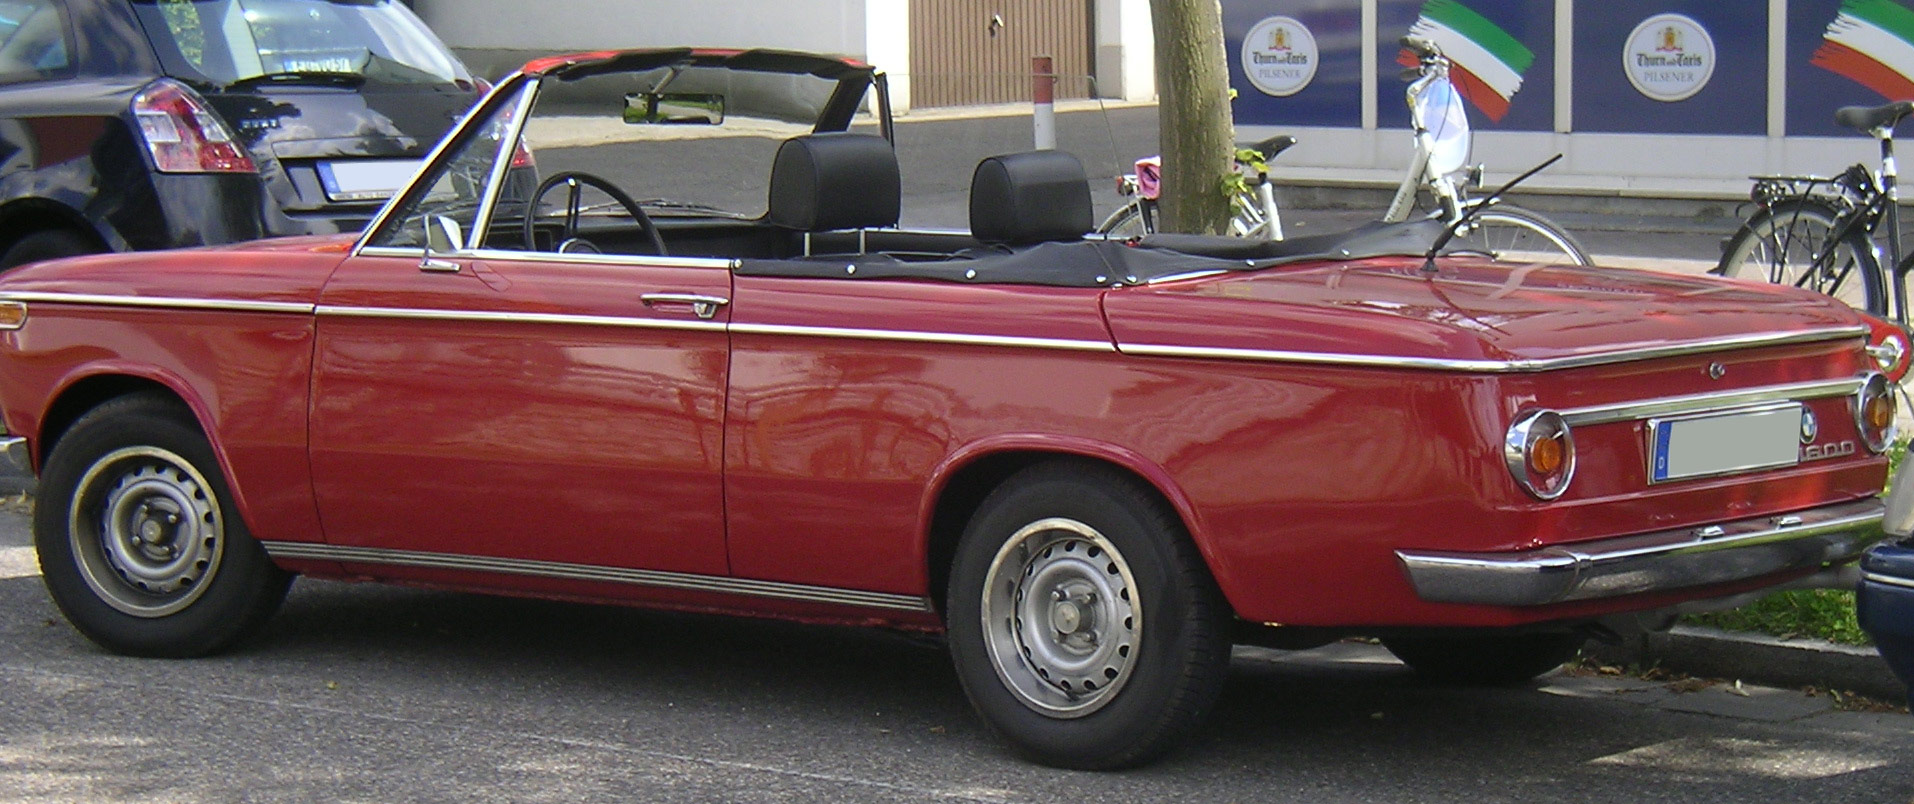 File bmw 1600 cabrio heck jpg wikimedia commons